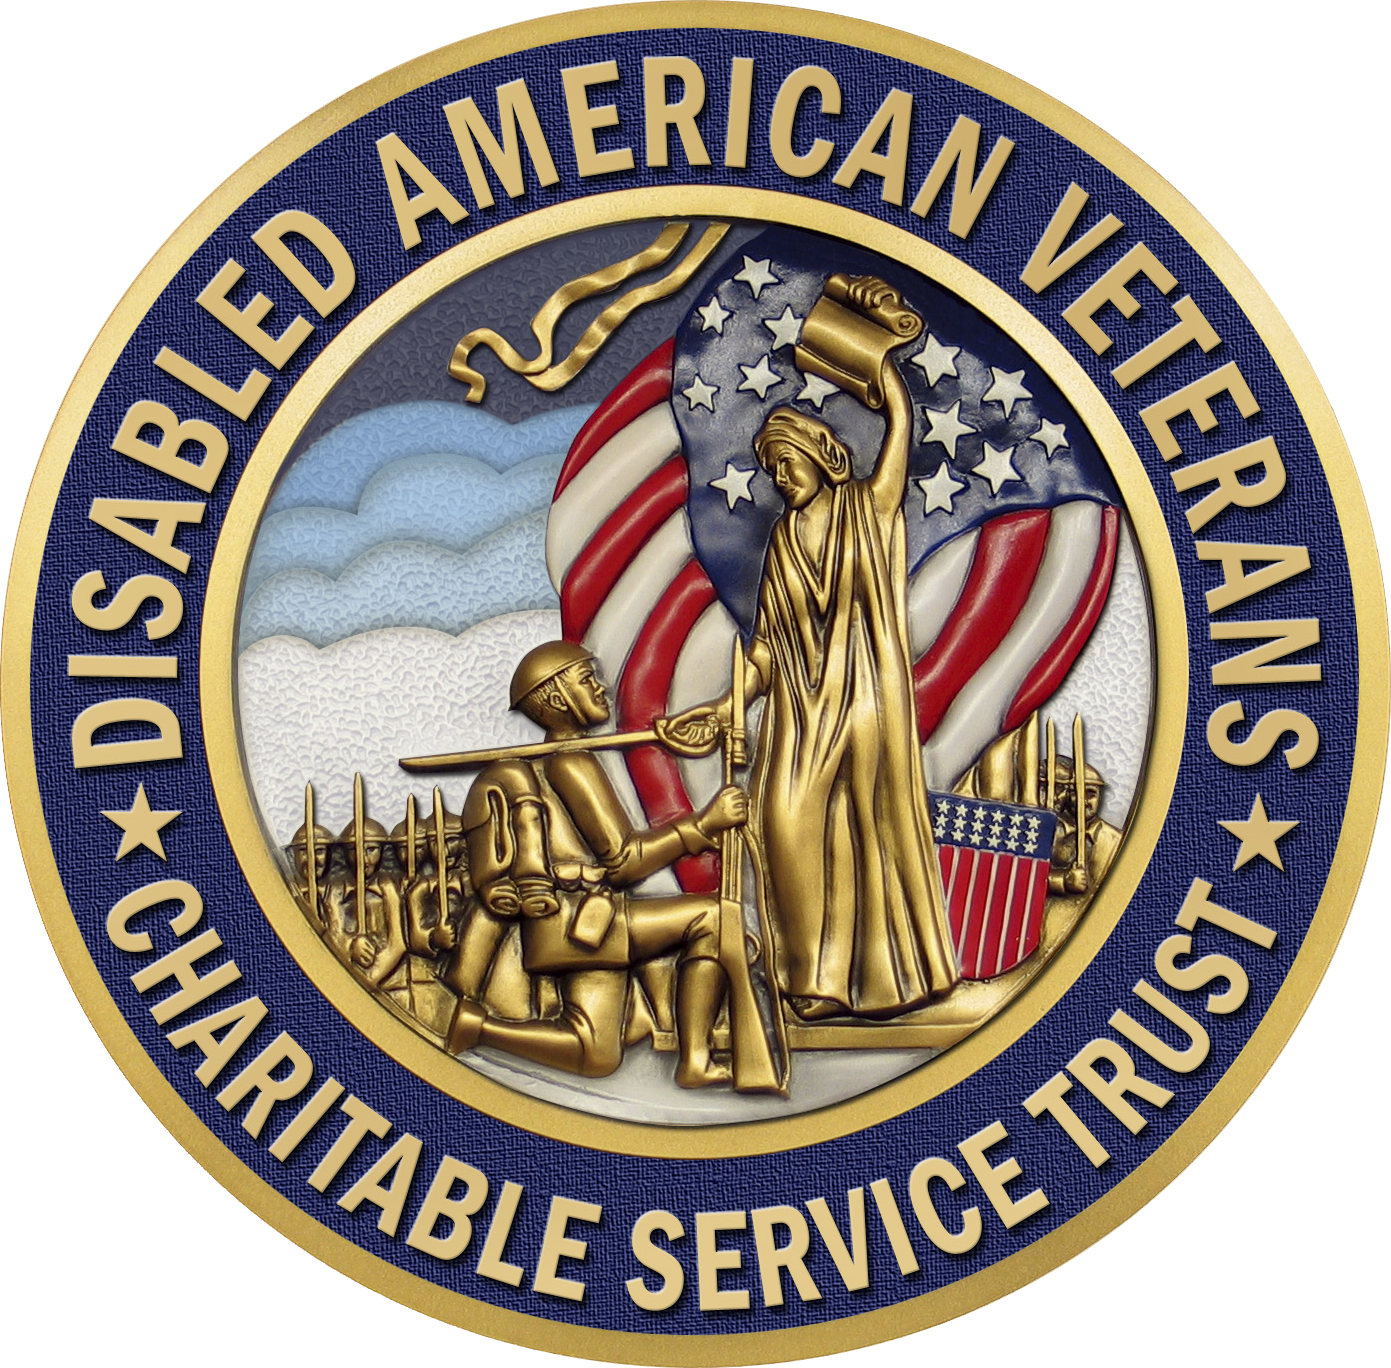 disabled american veterans essay The disabled american veterans has awarded 87 scholarships worth $578,000 since the inception of the jesse brown memorial youth scholarship program in 2000 eligibility.